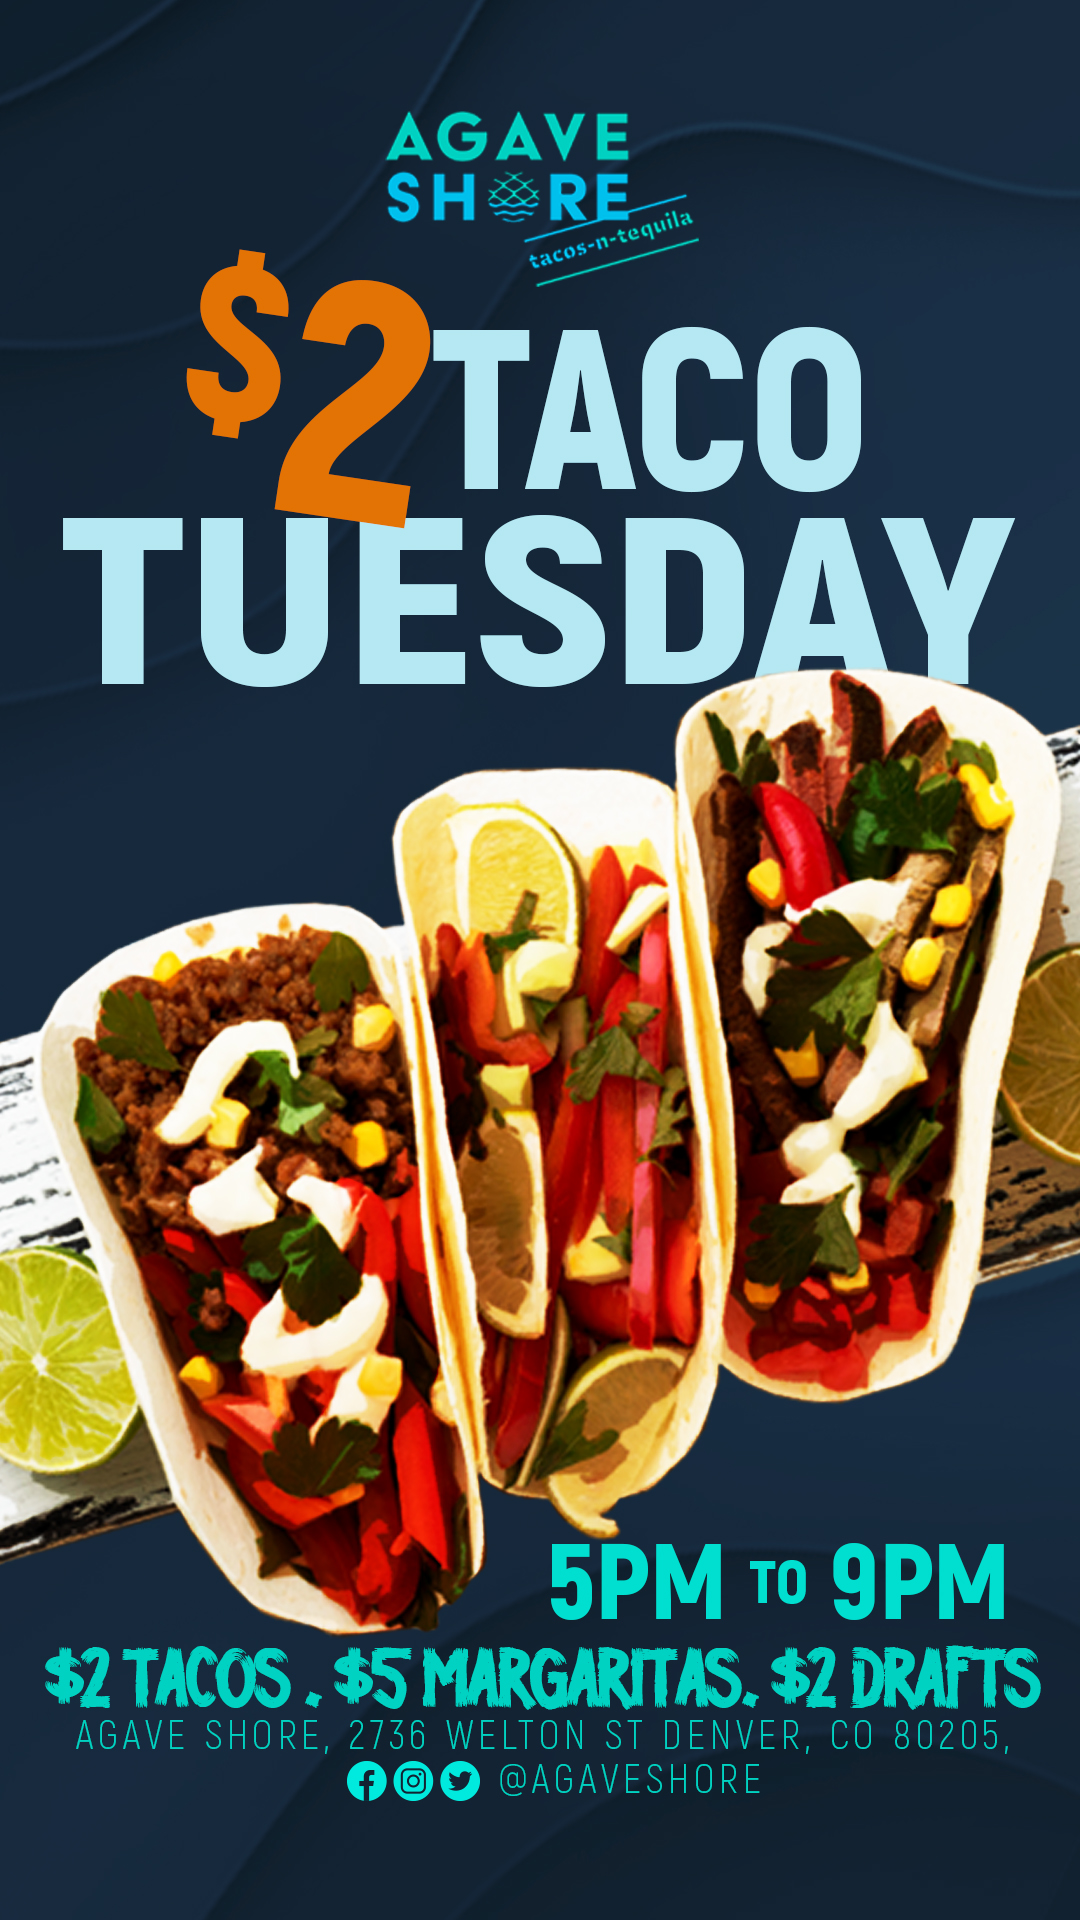 $2 Taco Tuesday 5pm to 9pm  $2 Tacos, $5 Margaritas, $2 Drafts